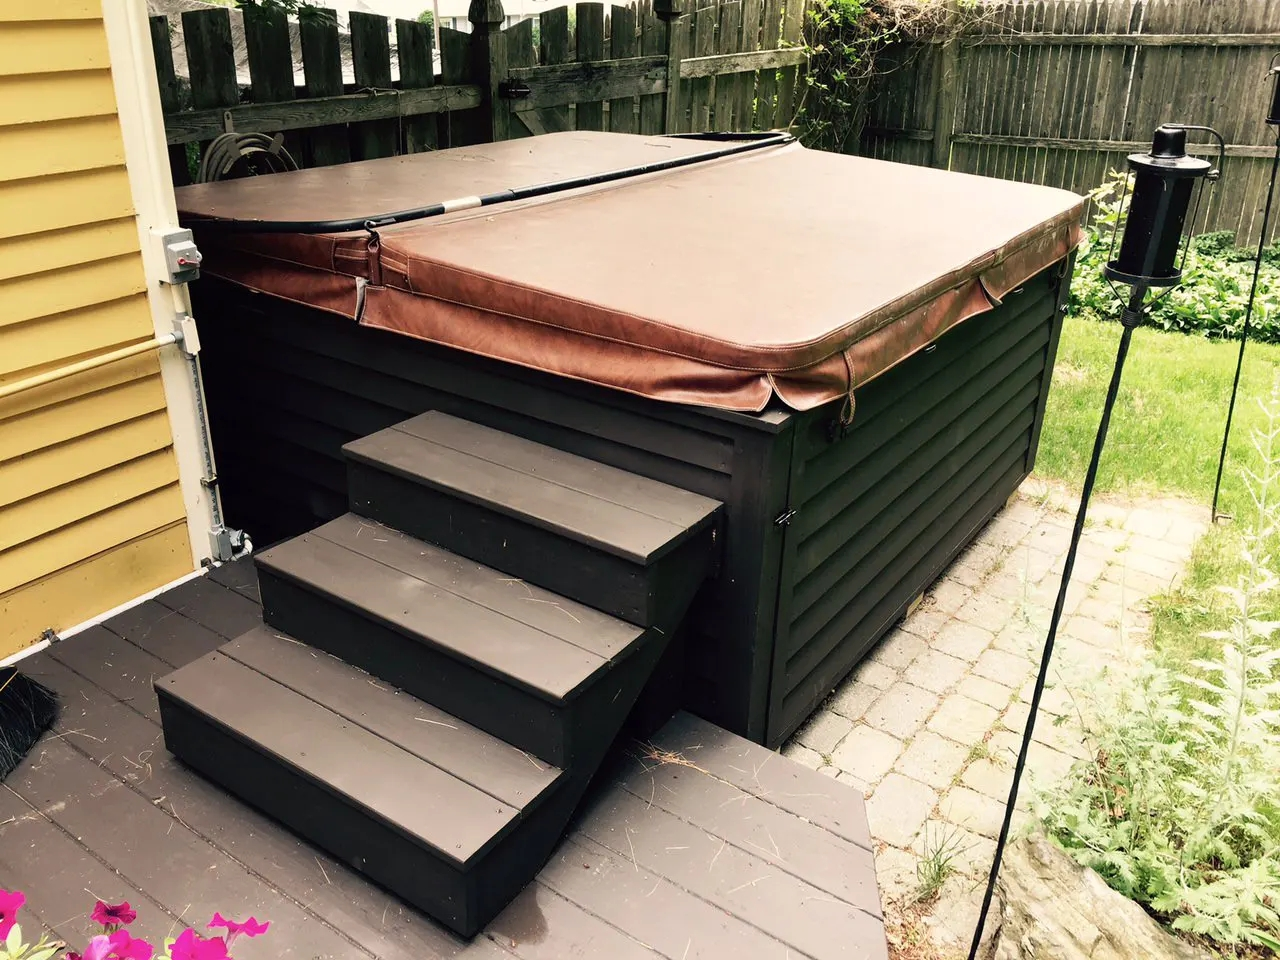 How To Build Hot Tub Steps A Step By Step Guide The Cover Guy | Wood Steps For Sale | Yard | Temporary | Design | Travel Trailer | Camper